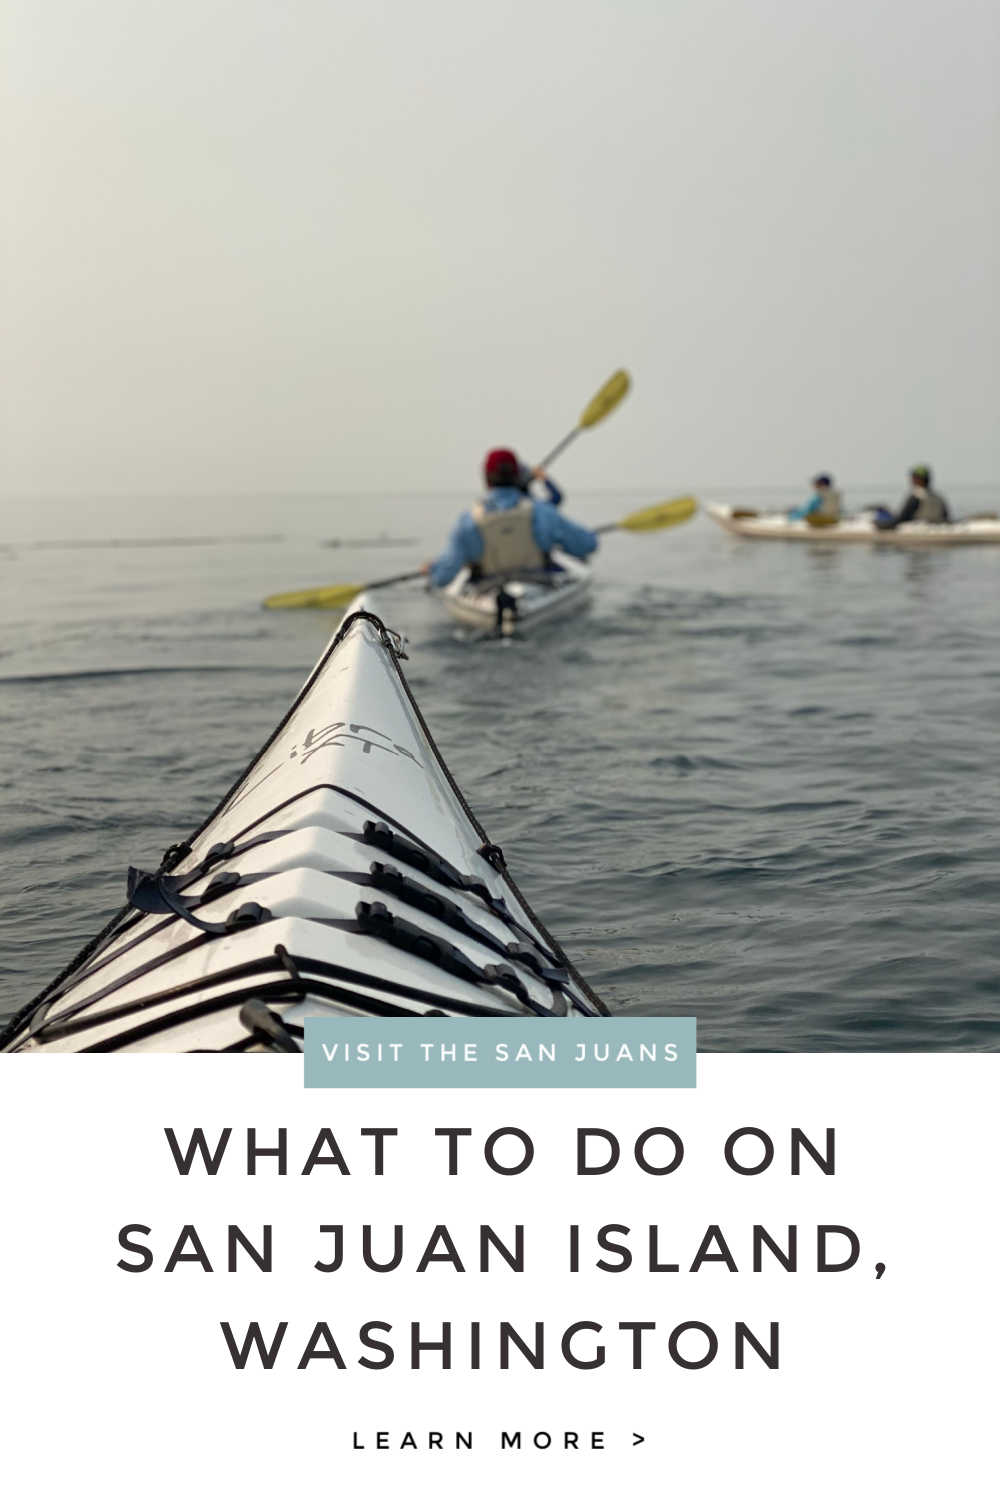 WHAT TO DO IN SAN JUANS